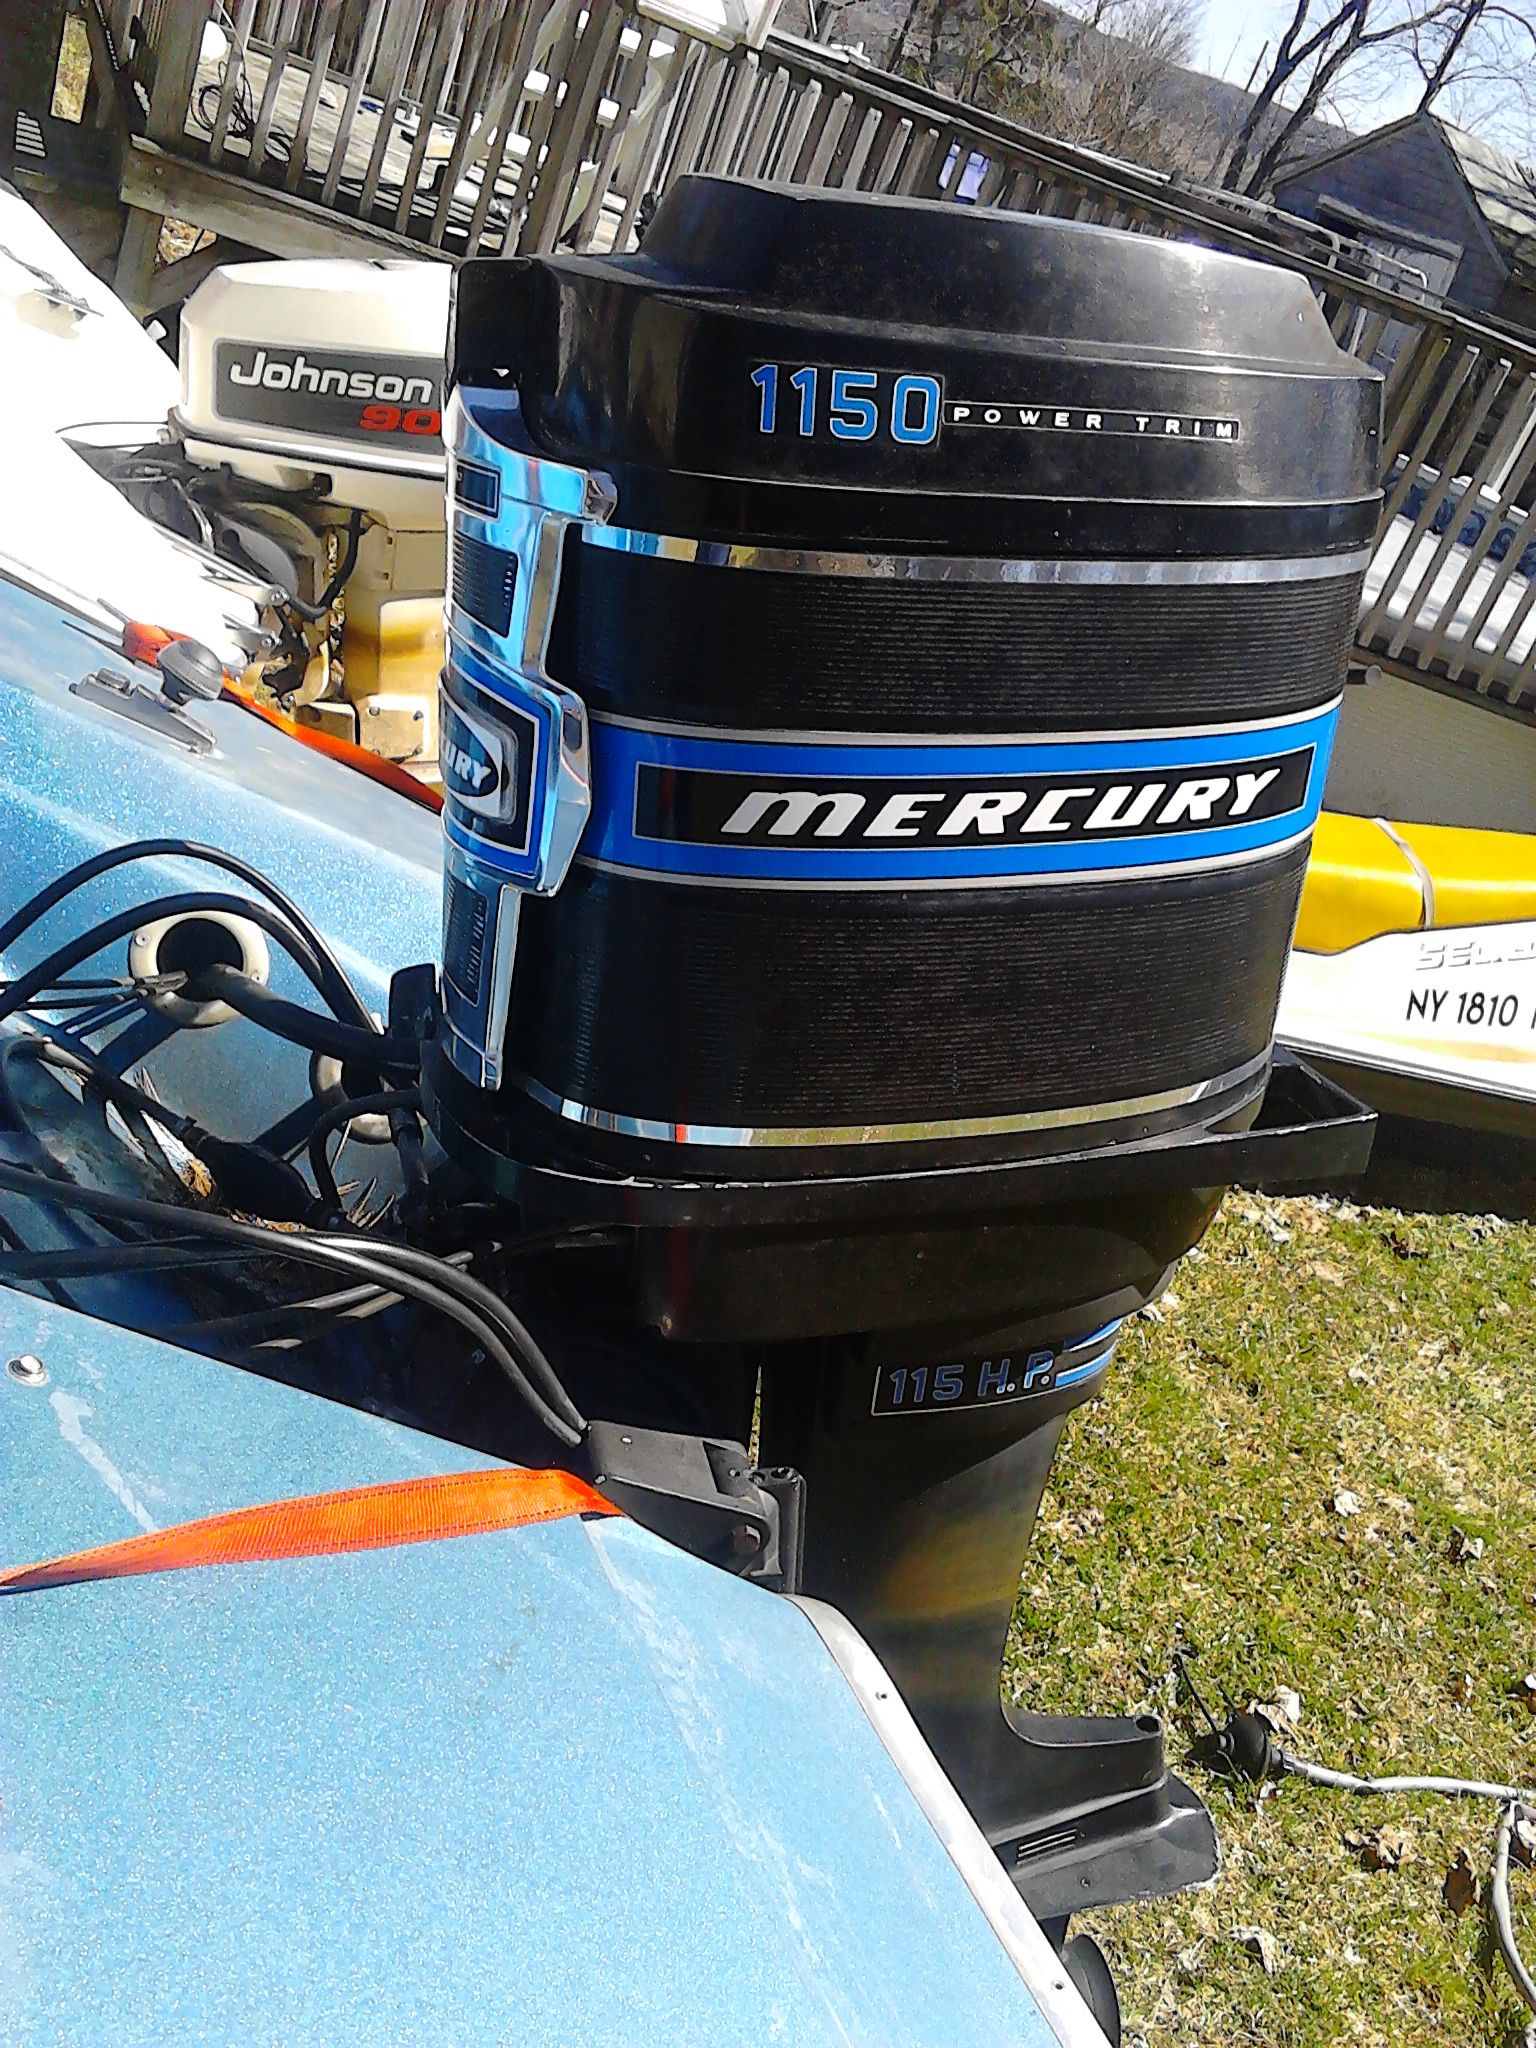 1975 mercury 115hp inline 6 outboard glastron outboard motors1975 mercury 115hp inline 6 outboard